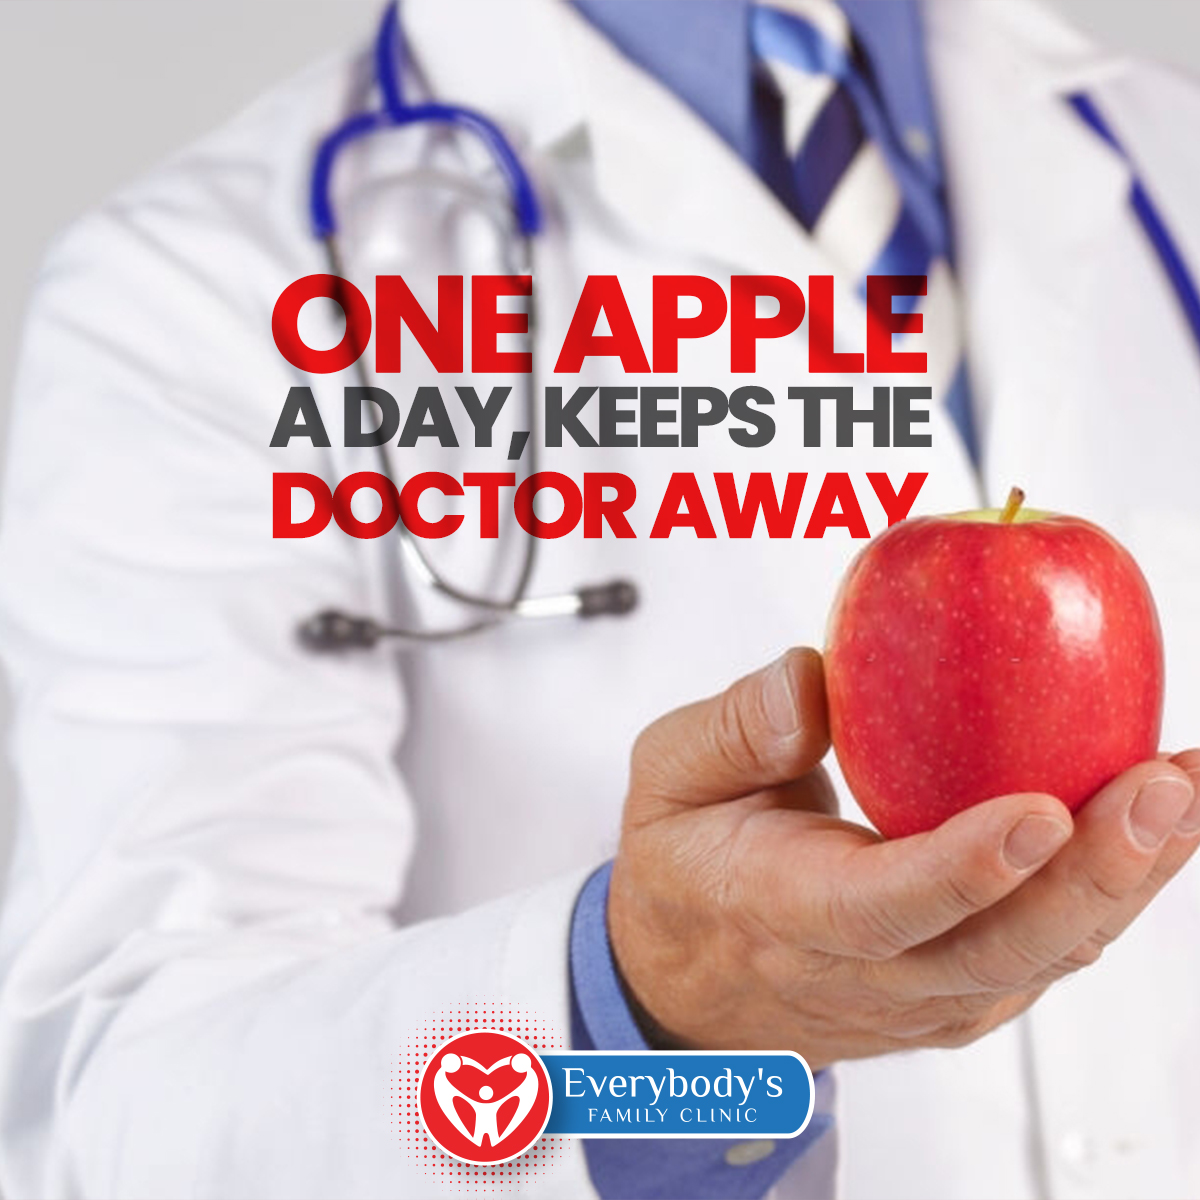 03-18---Everrybody-Fa-mily-Clinic---One-Apple3